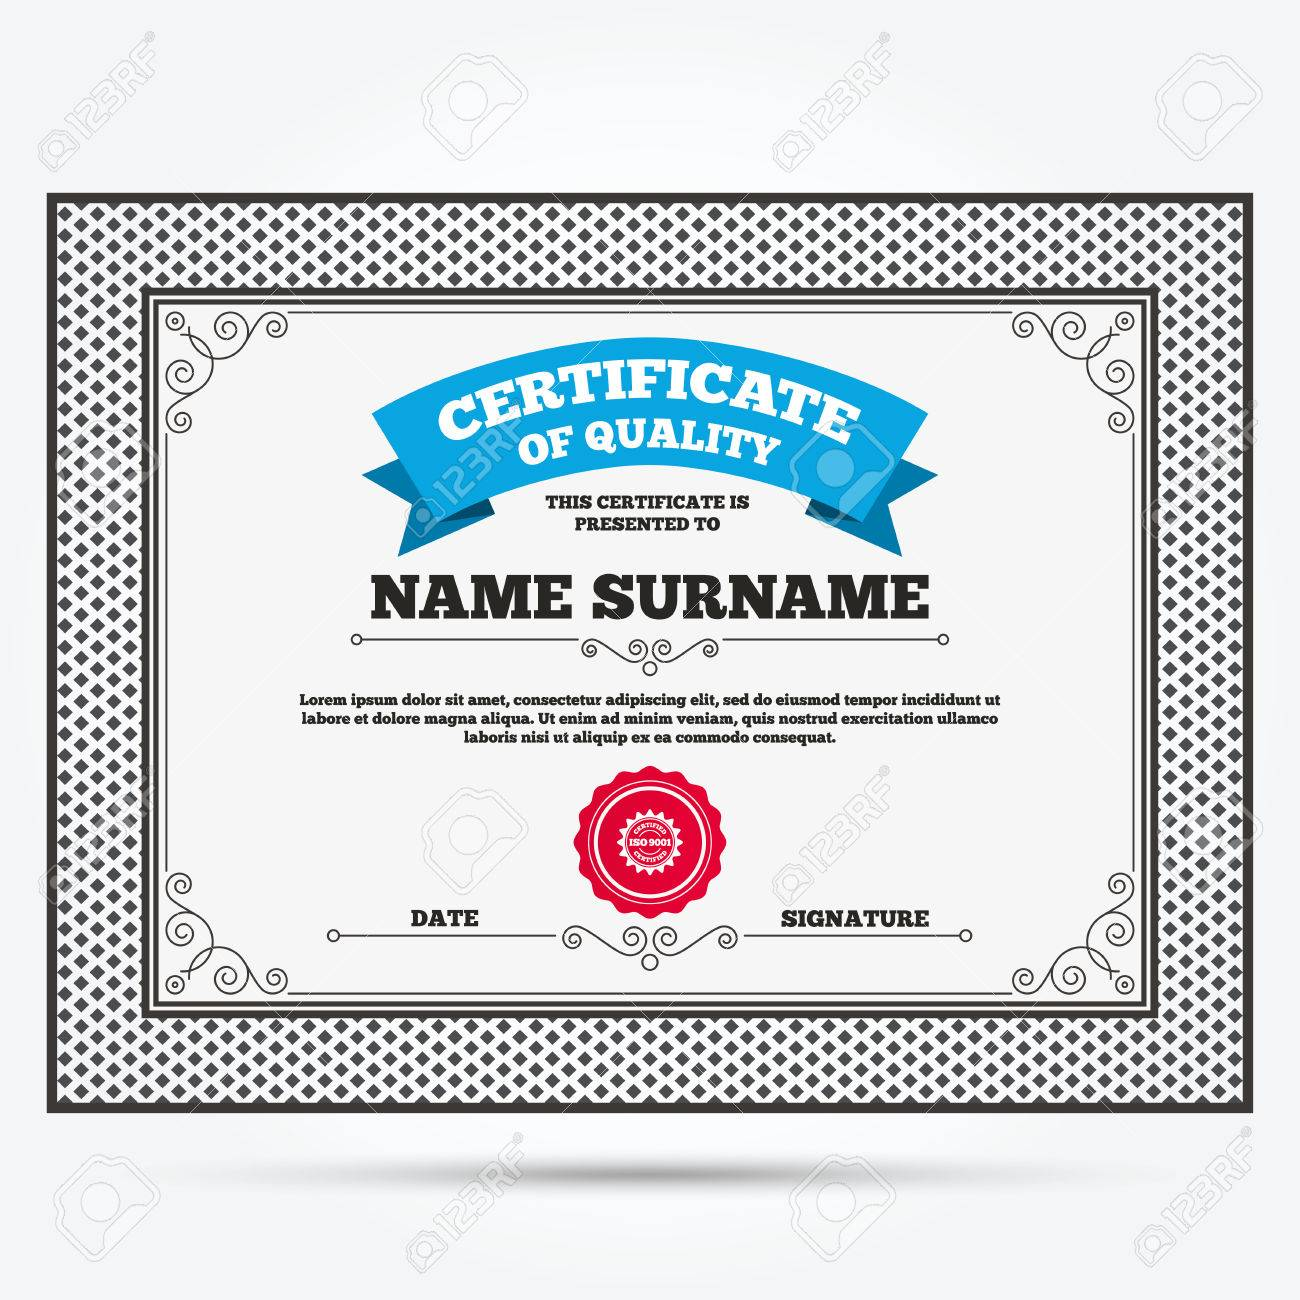 Certificate of quality iso 9001 certified sign icon certificate of quality iso 9001 certified sign icon certification star stamp template with alramifo Image collections